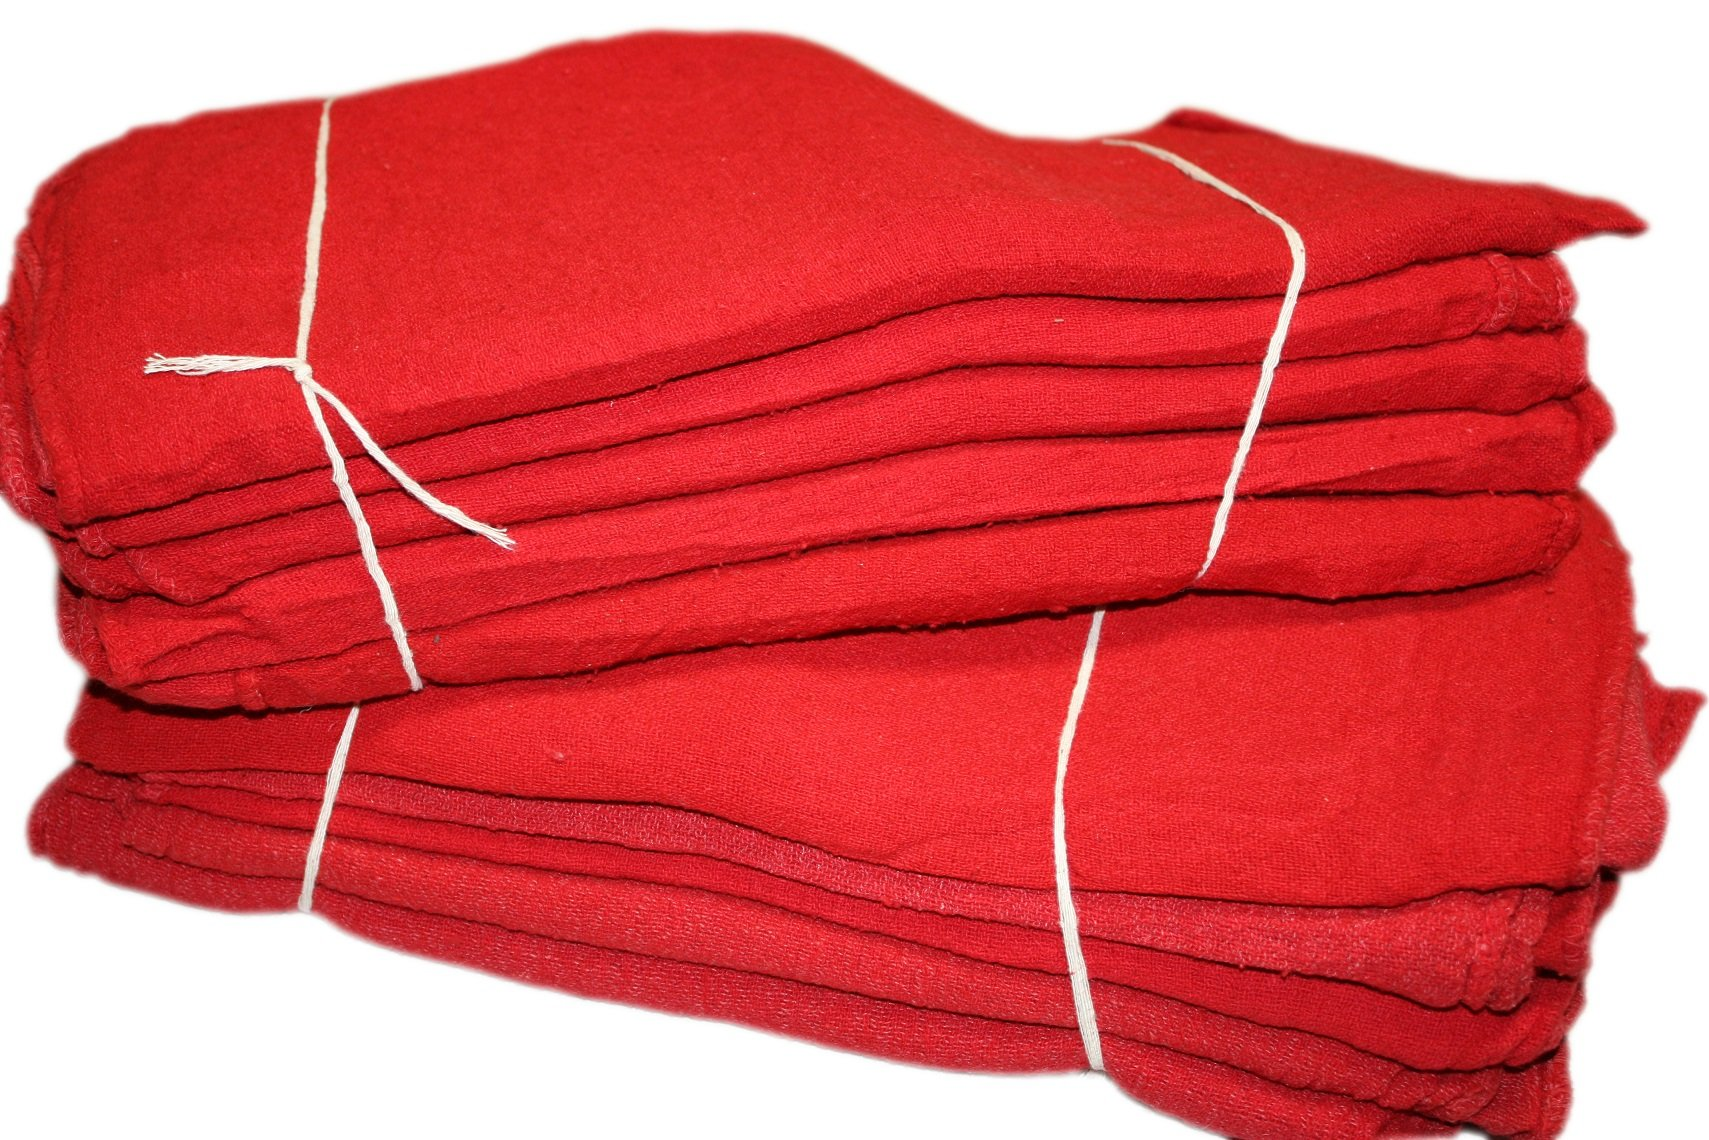 ATLAS 10000 Pieces Red Cotton Shop Towel Rags, Industrial Grade, New Wipers for Cleaning, Wiping Floors and Machinery by ATLAS (Image #1)